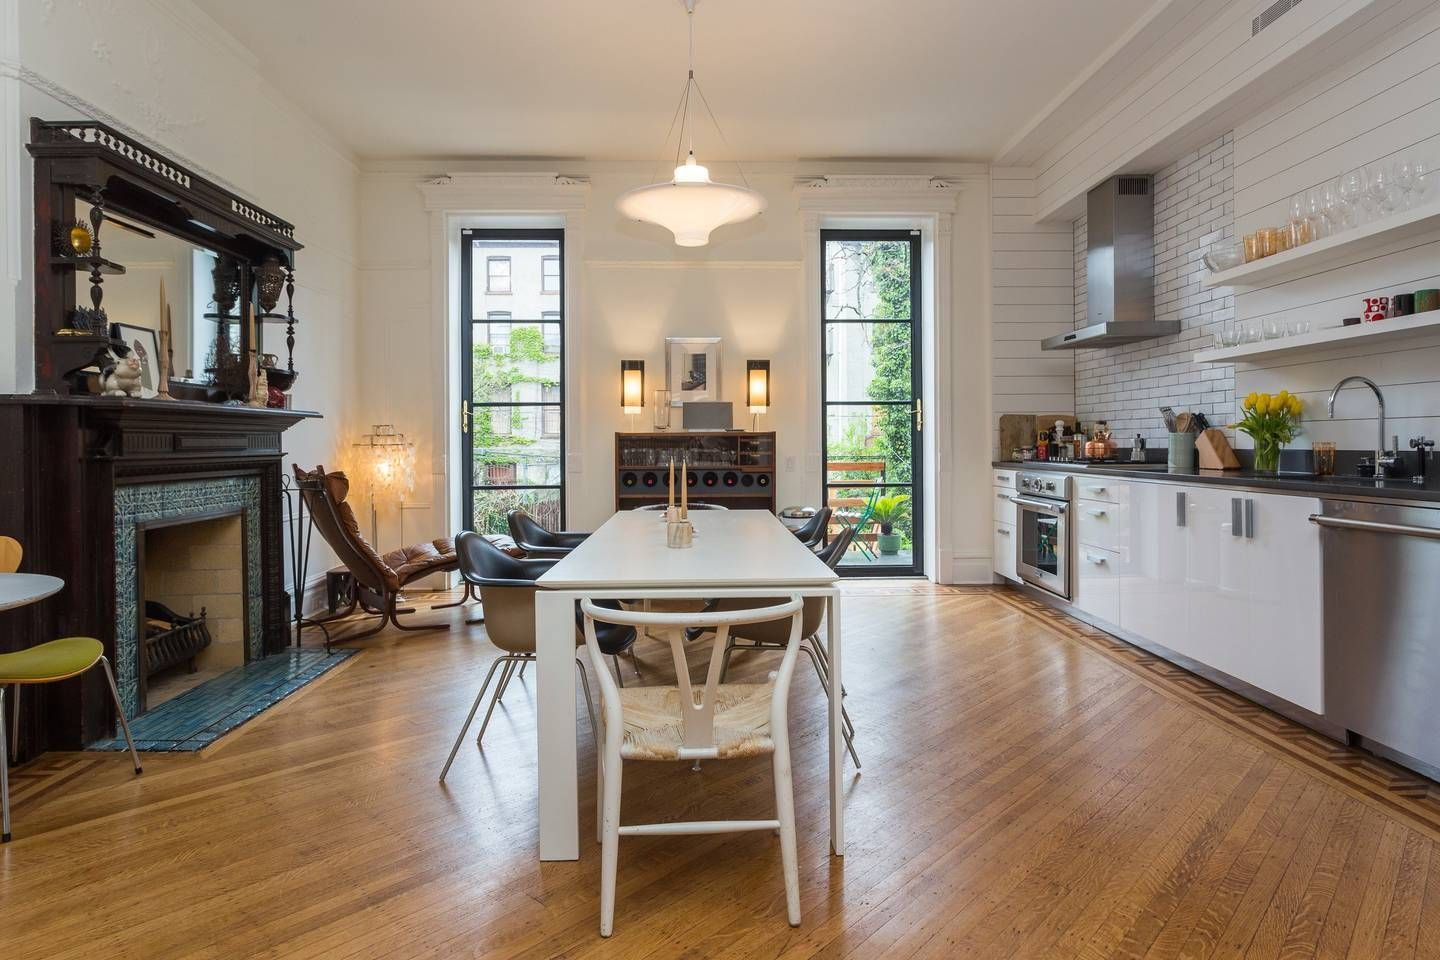 Townhouse in Brooklyn, United States. 1,700 square foot